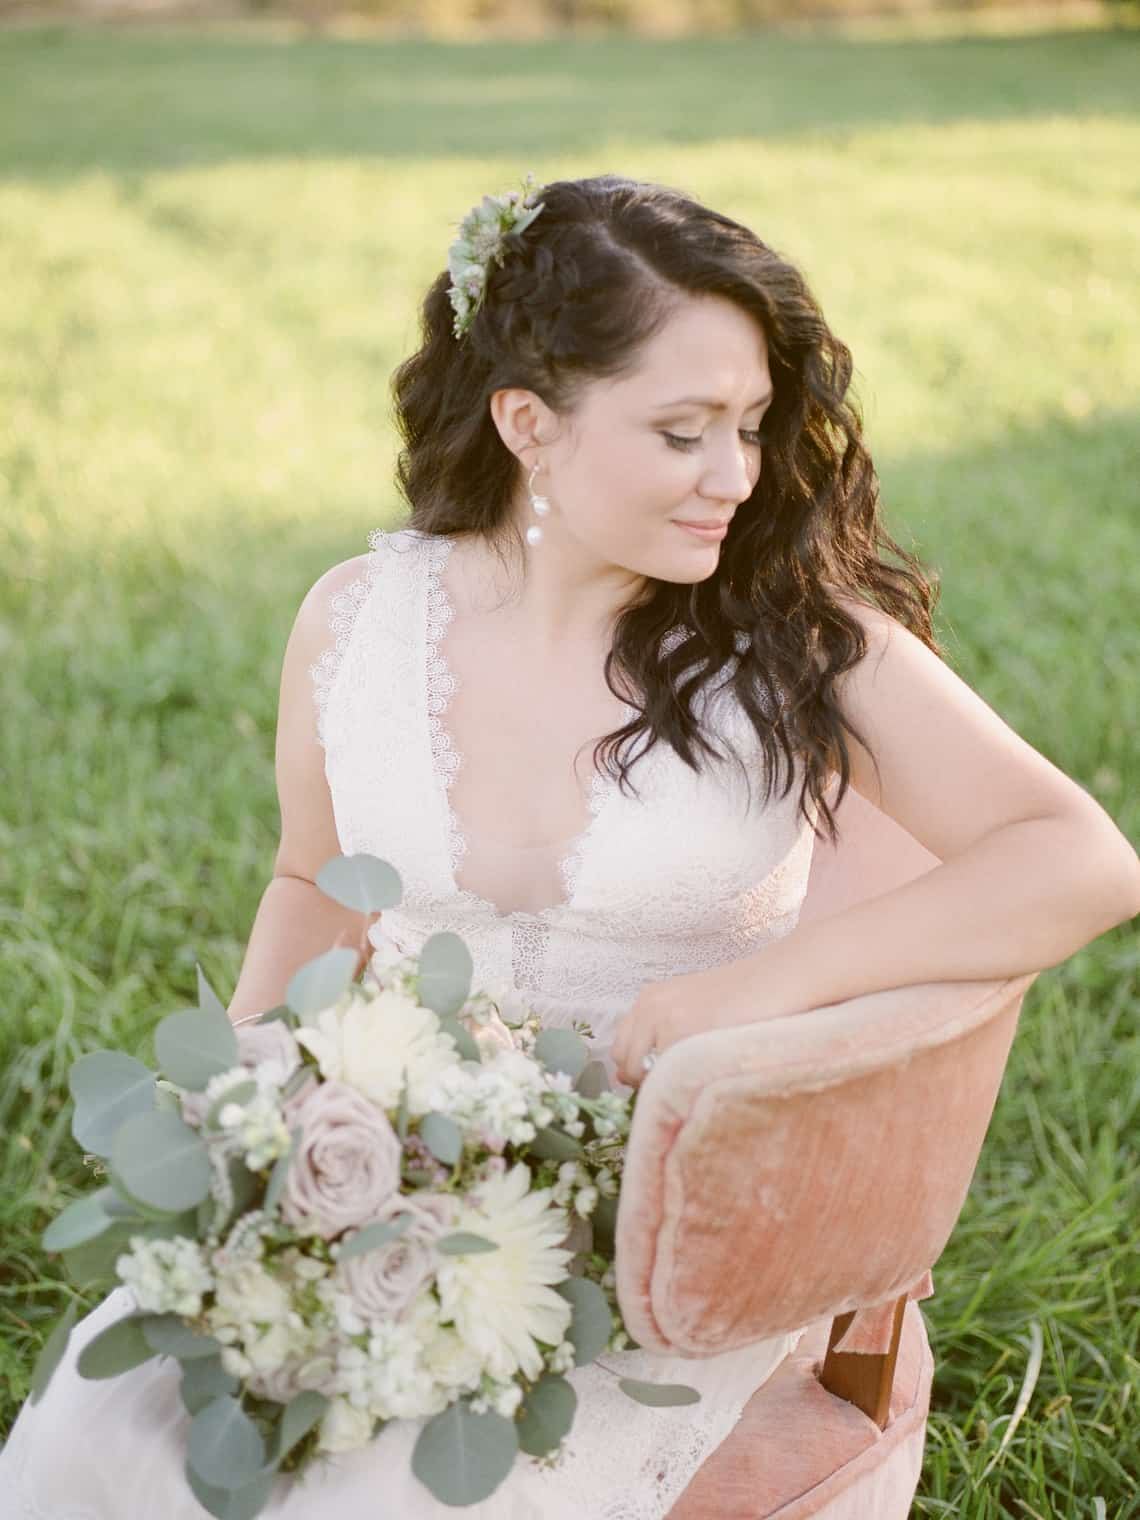 Bride Sitting with Bouquet in Chair